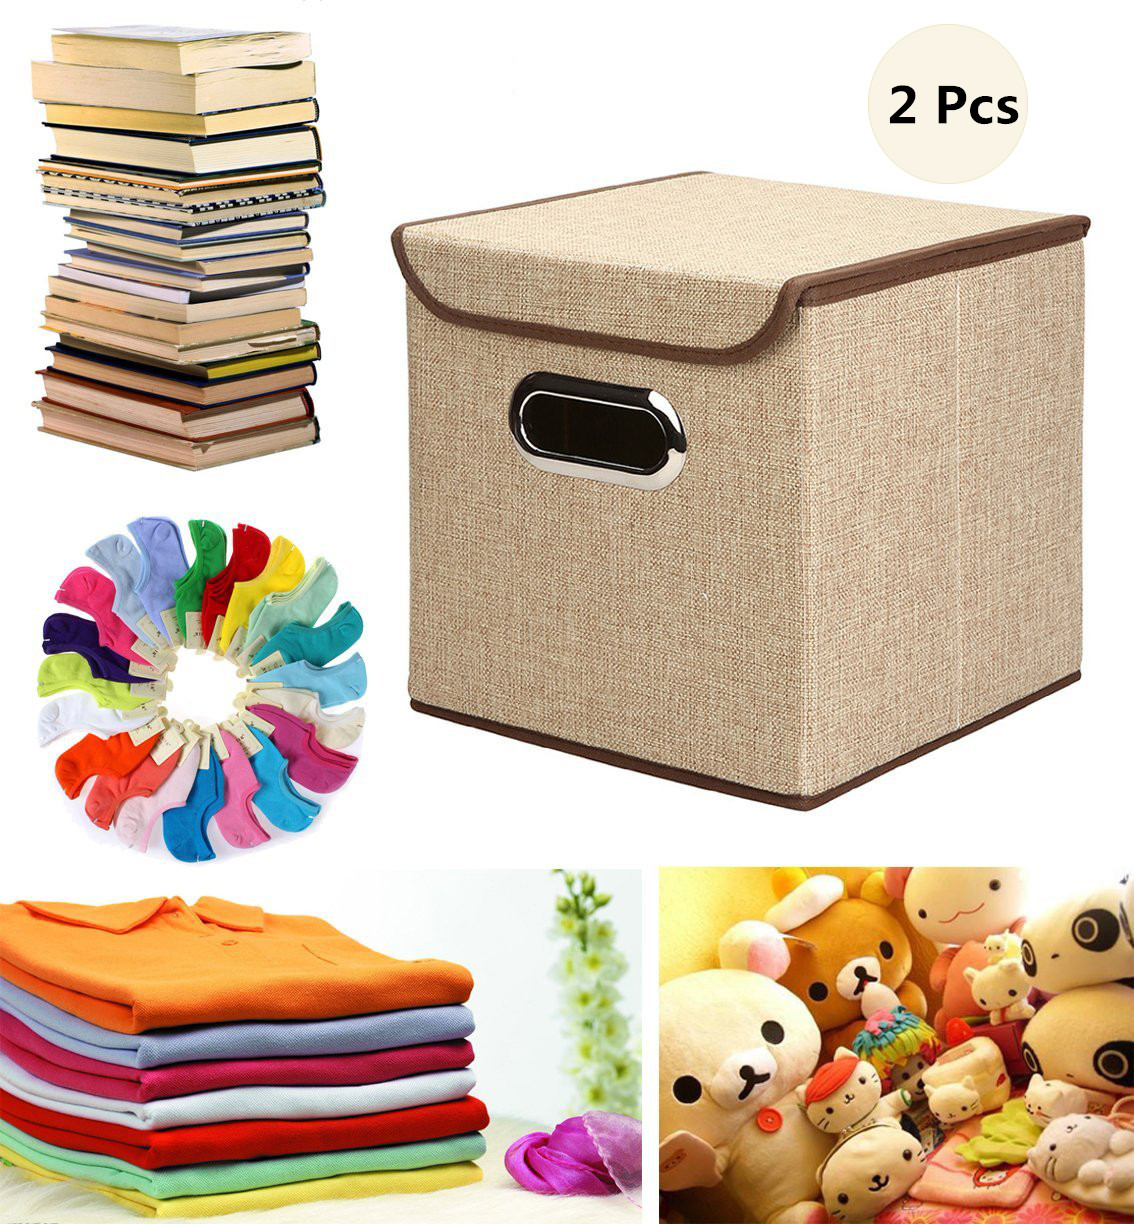 Zimtown 2 Pcs Storage Box Linen Fabric Foldable Basket Cube Organizer Bin Box Container Drawer with Lid - Great For Office Nursery Bedroom Shelf (Khaki)